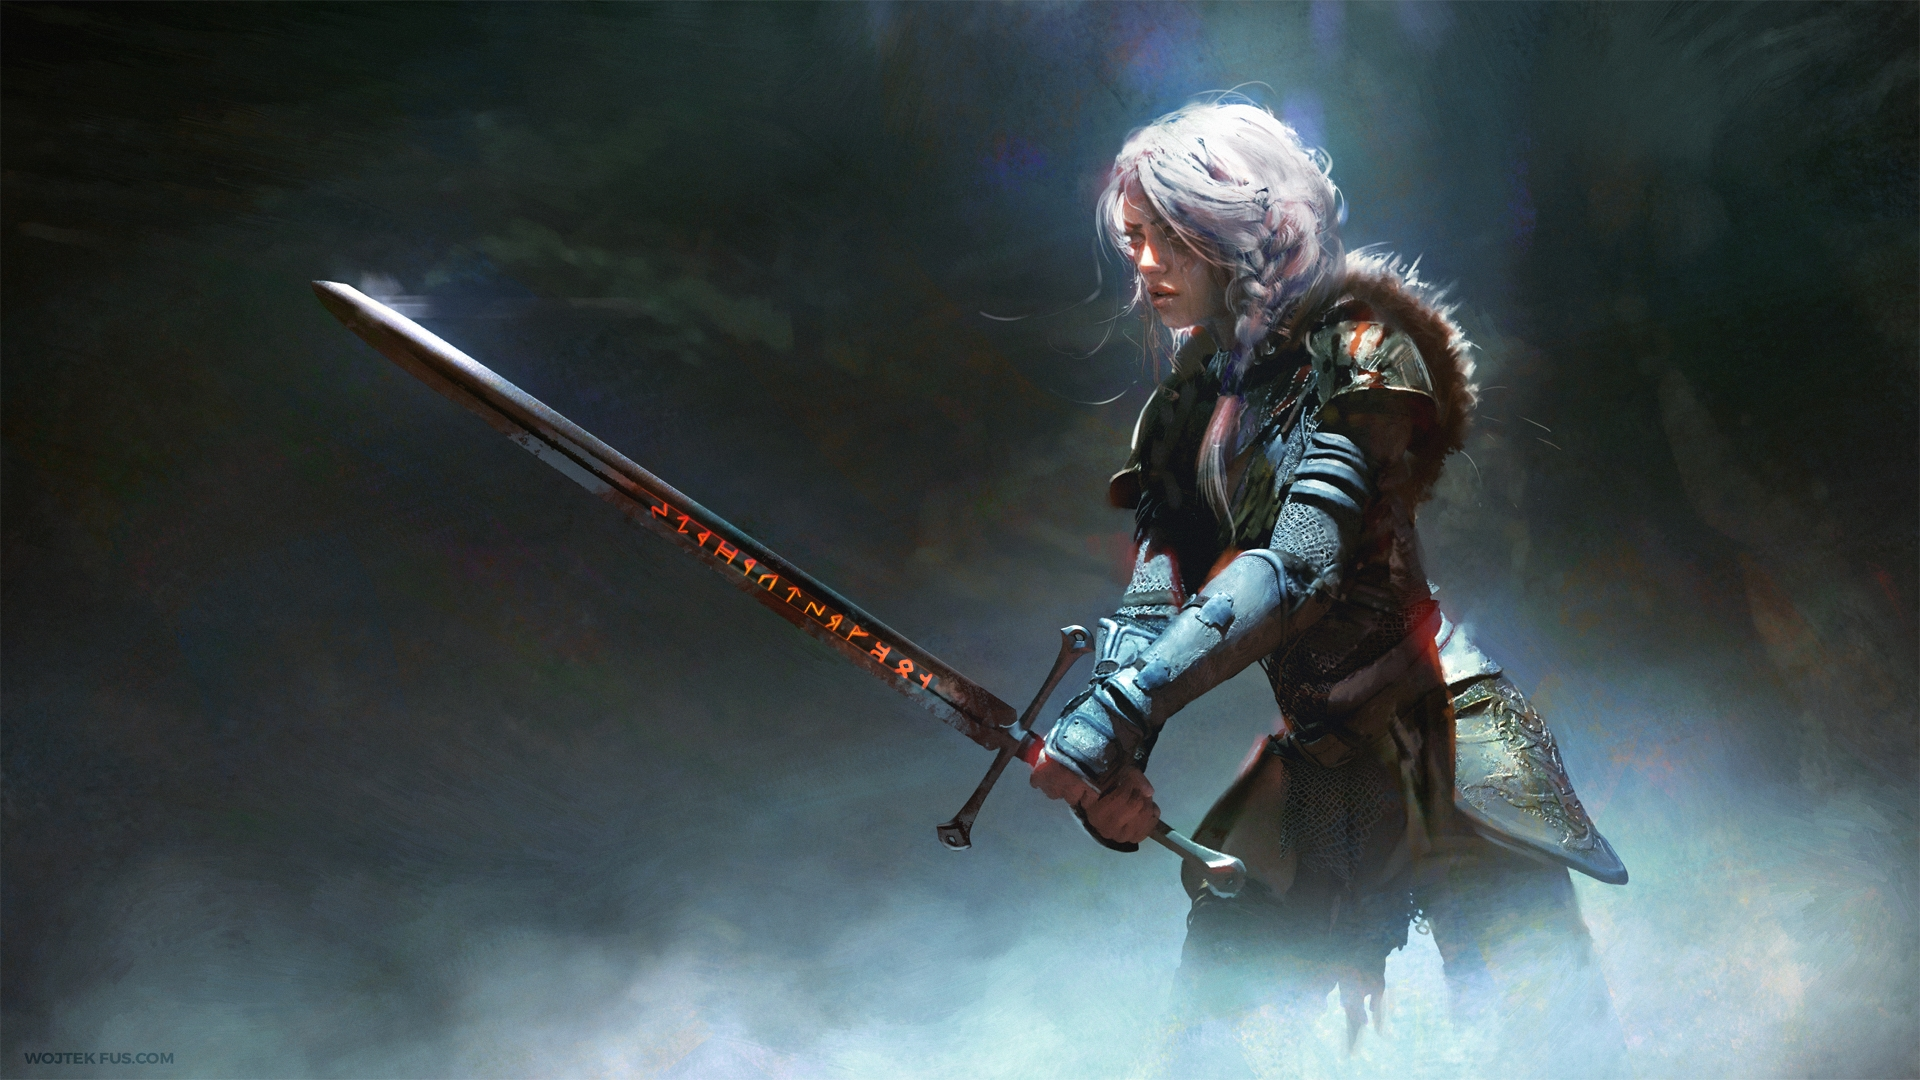 Download 1920x1080 Wallpaper The Witcher 3 Wild Hunt Video Game